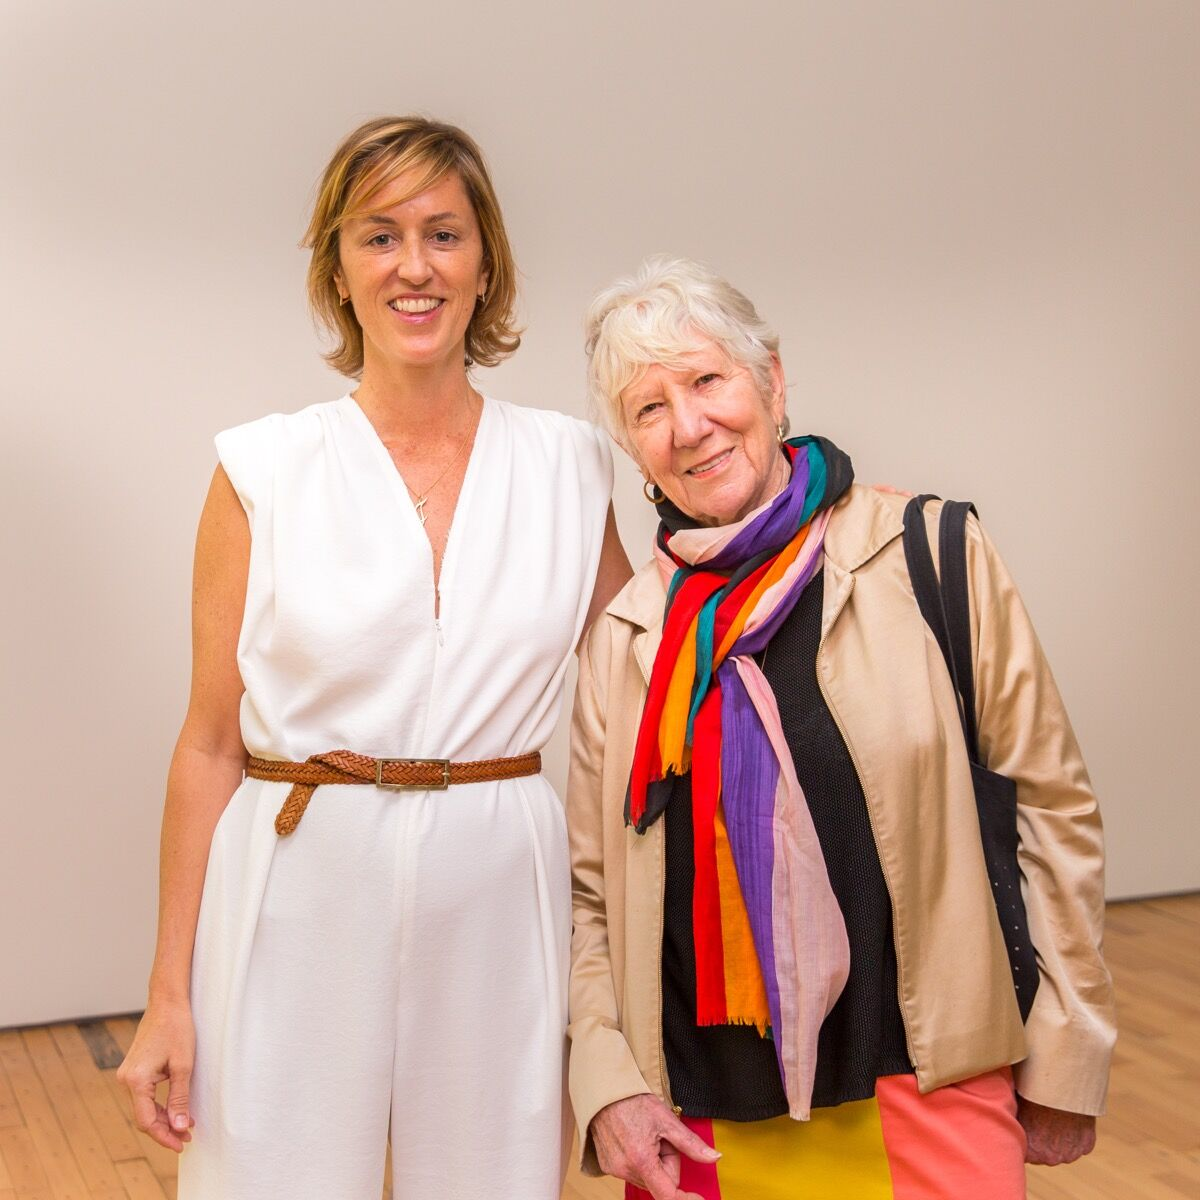 Mary with Jessica Morgan, director of Dia Art Foundation, at the Dia:Beacon Spring Benefit, 2017.